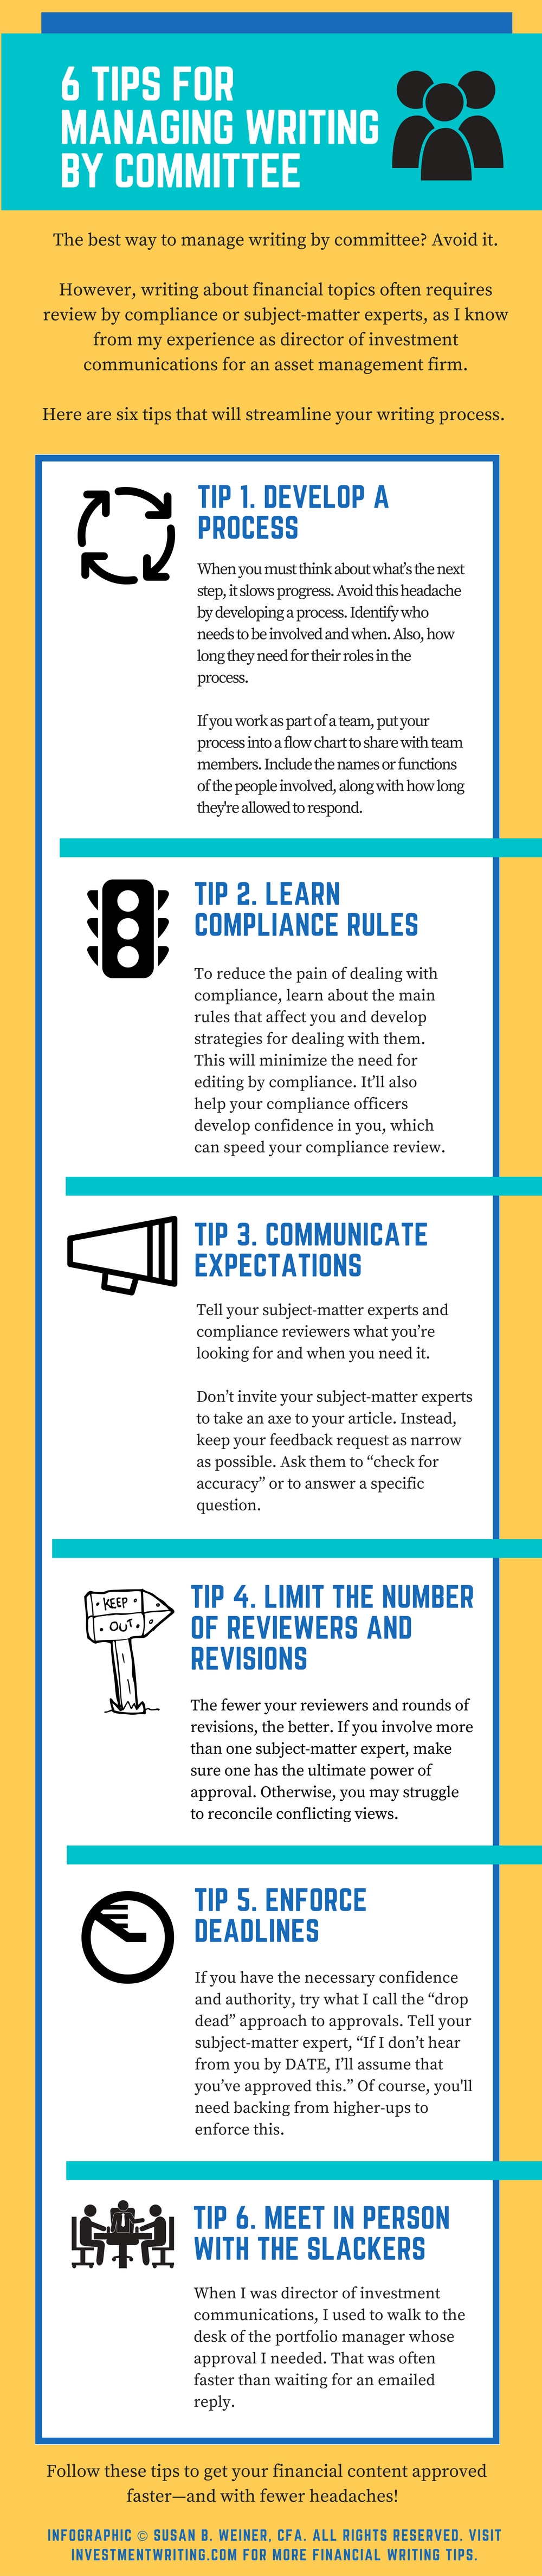 6 Tips Infographic #2